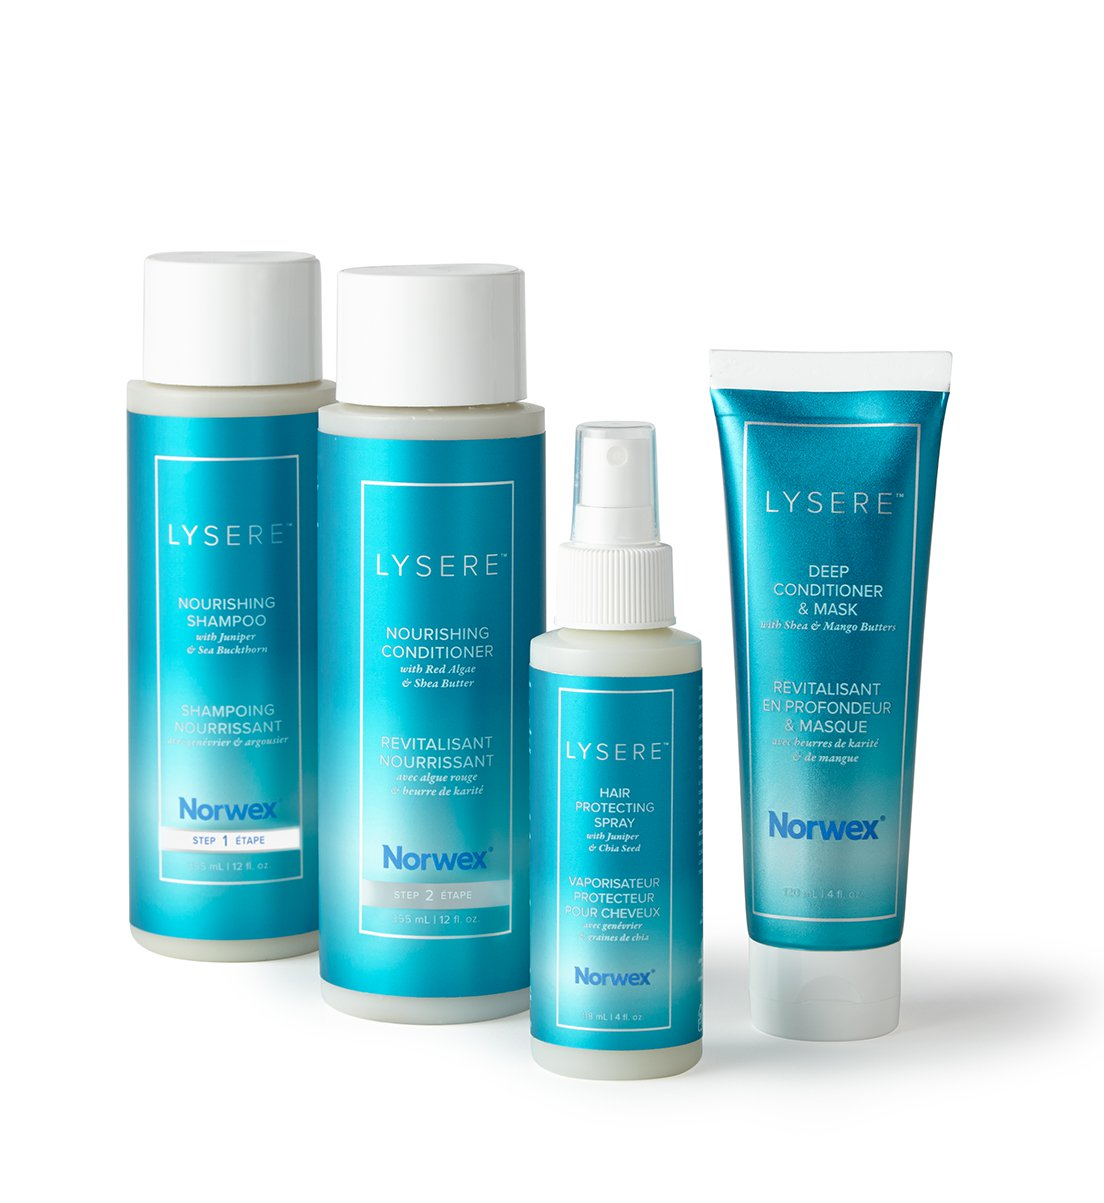 Lysere Nourishing Hair Care Collection